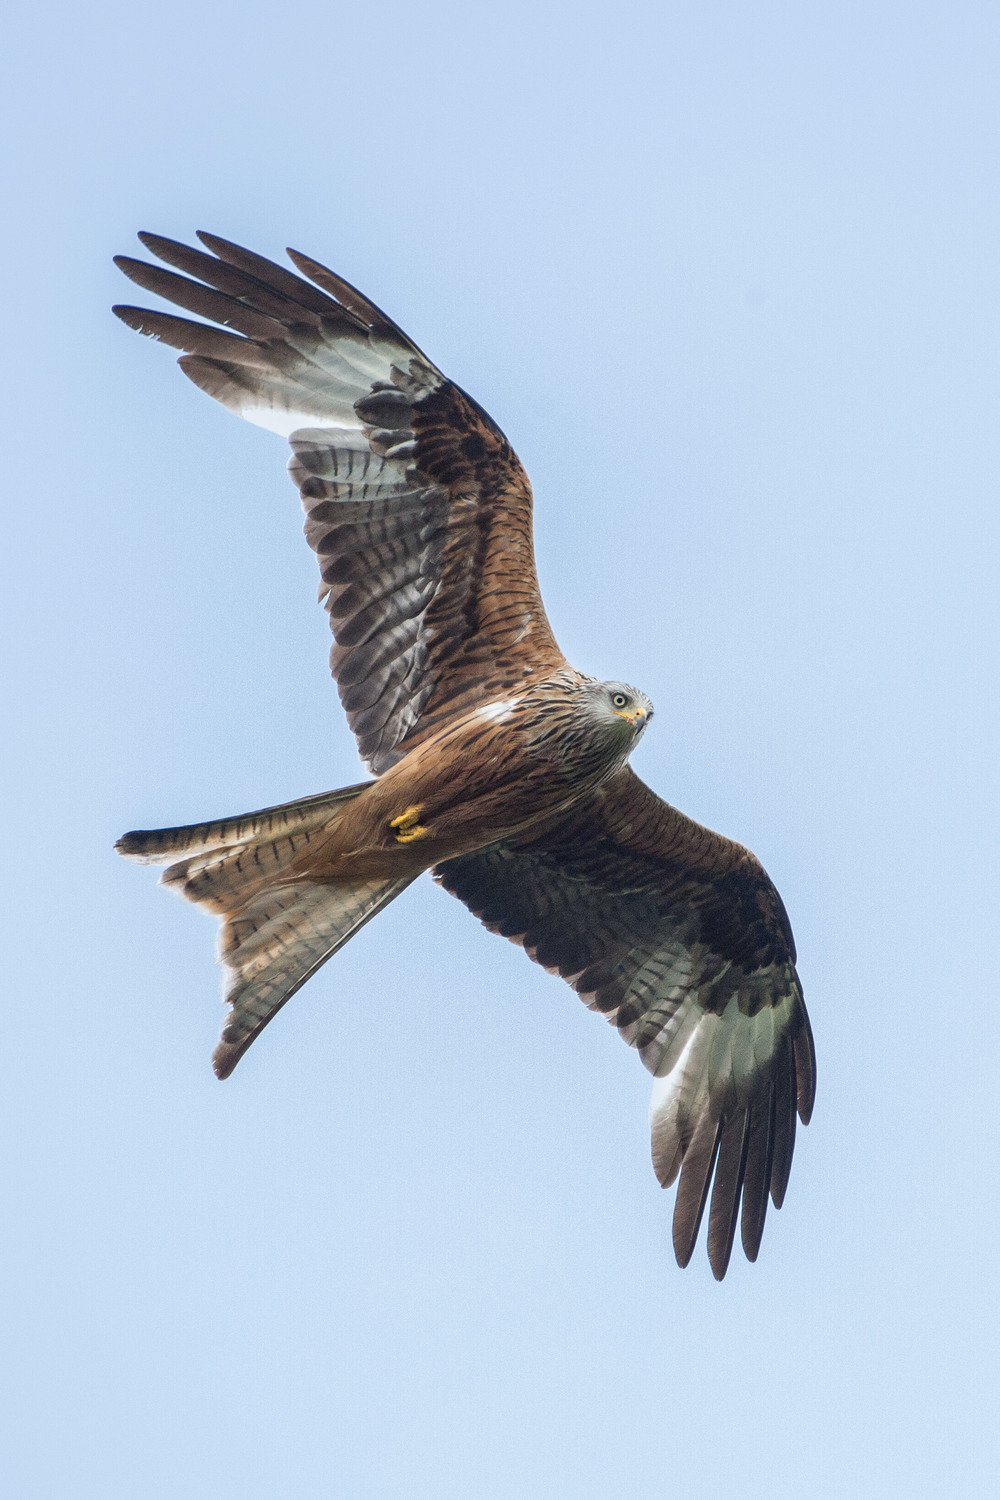 A photo I took in June this year of a Red Kite at Gigrin Farm in Wales